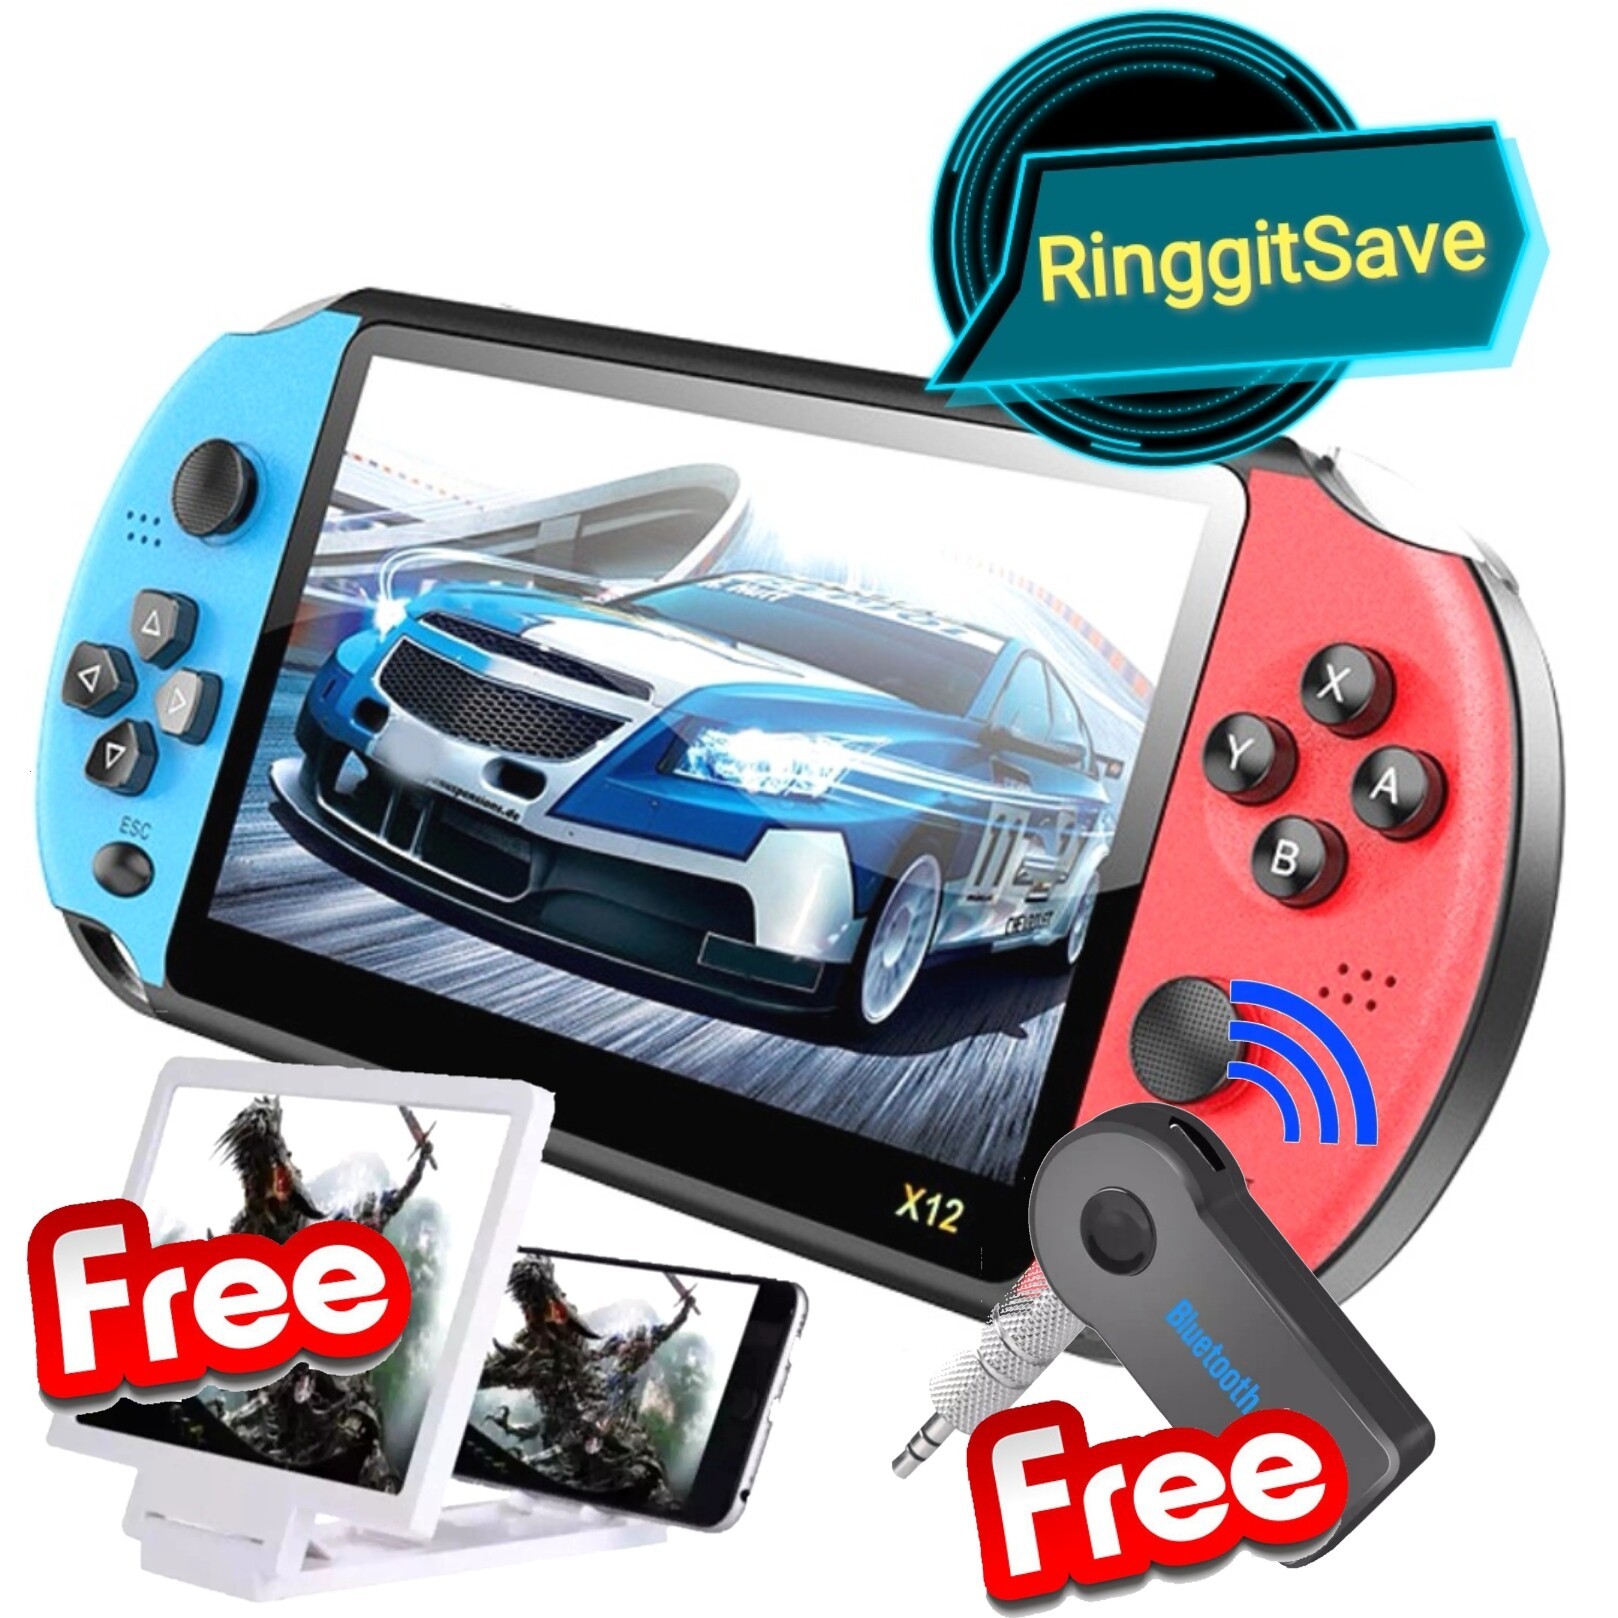 (Ready Stock) X12 5.1 Inch Double Rocker Handheld Game Console Support TV Output Retro Portable Mini Video Player Build In 2000 + Classic Games Support TF Card With Free Gift